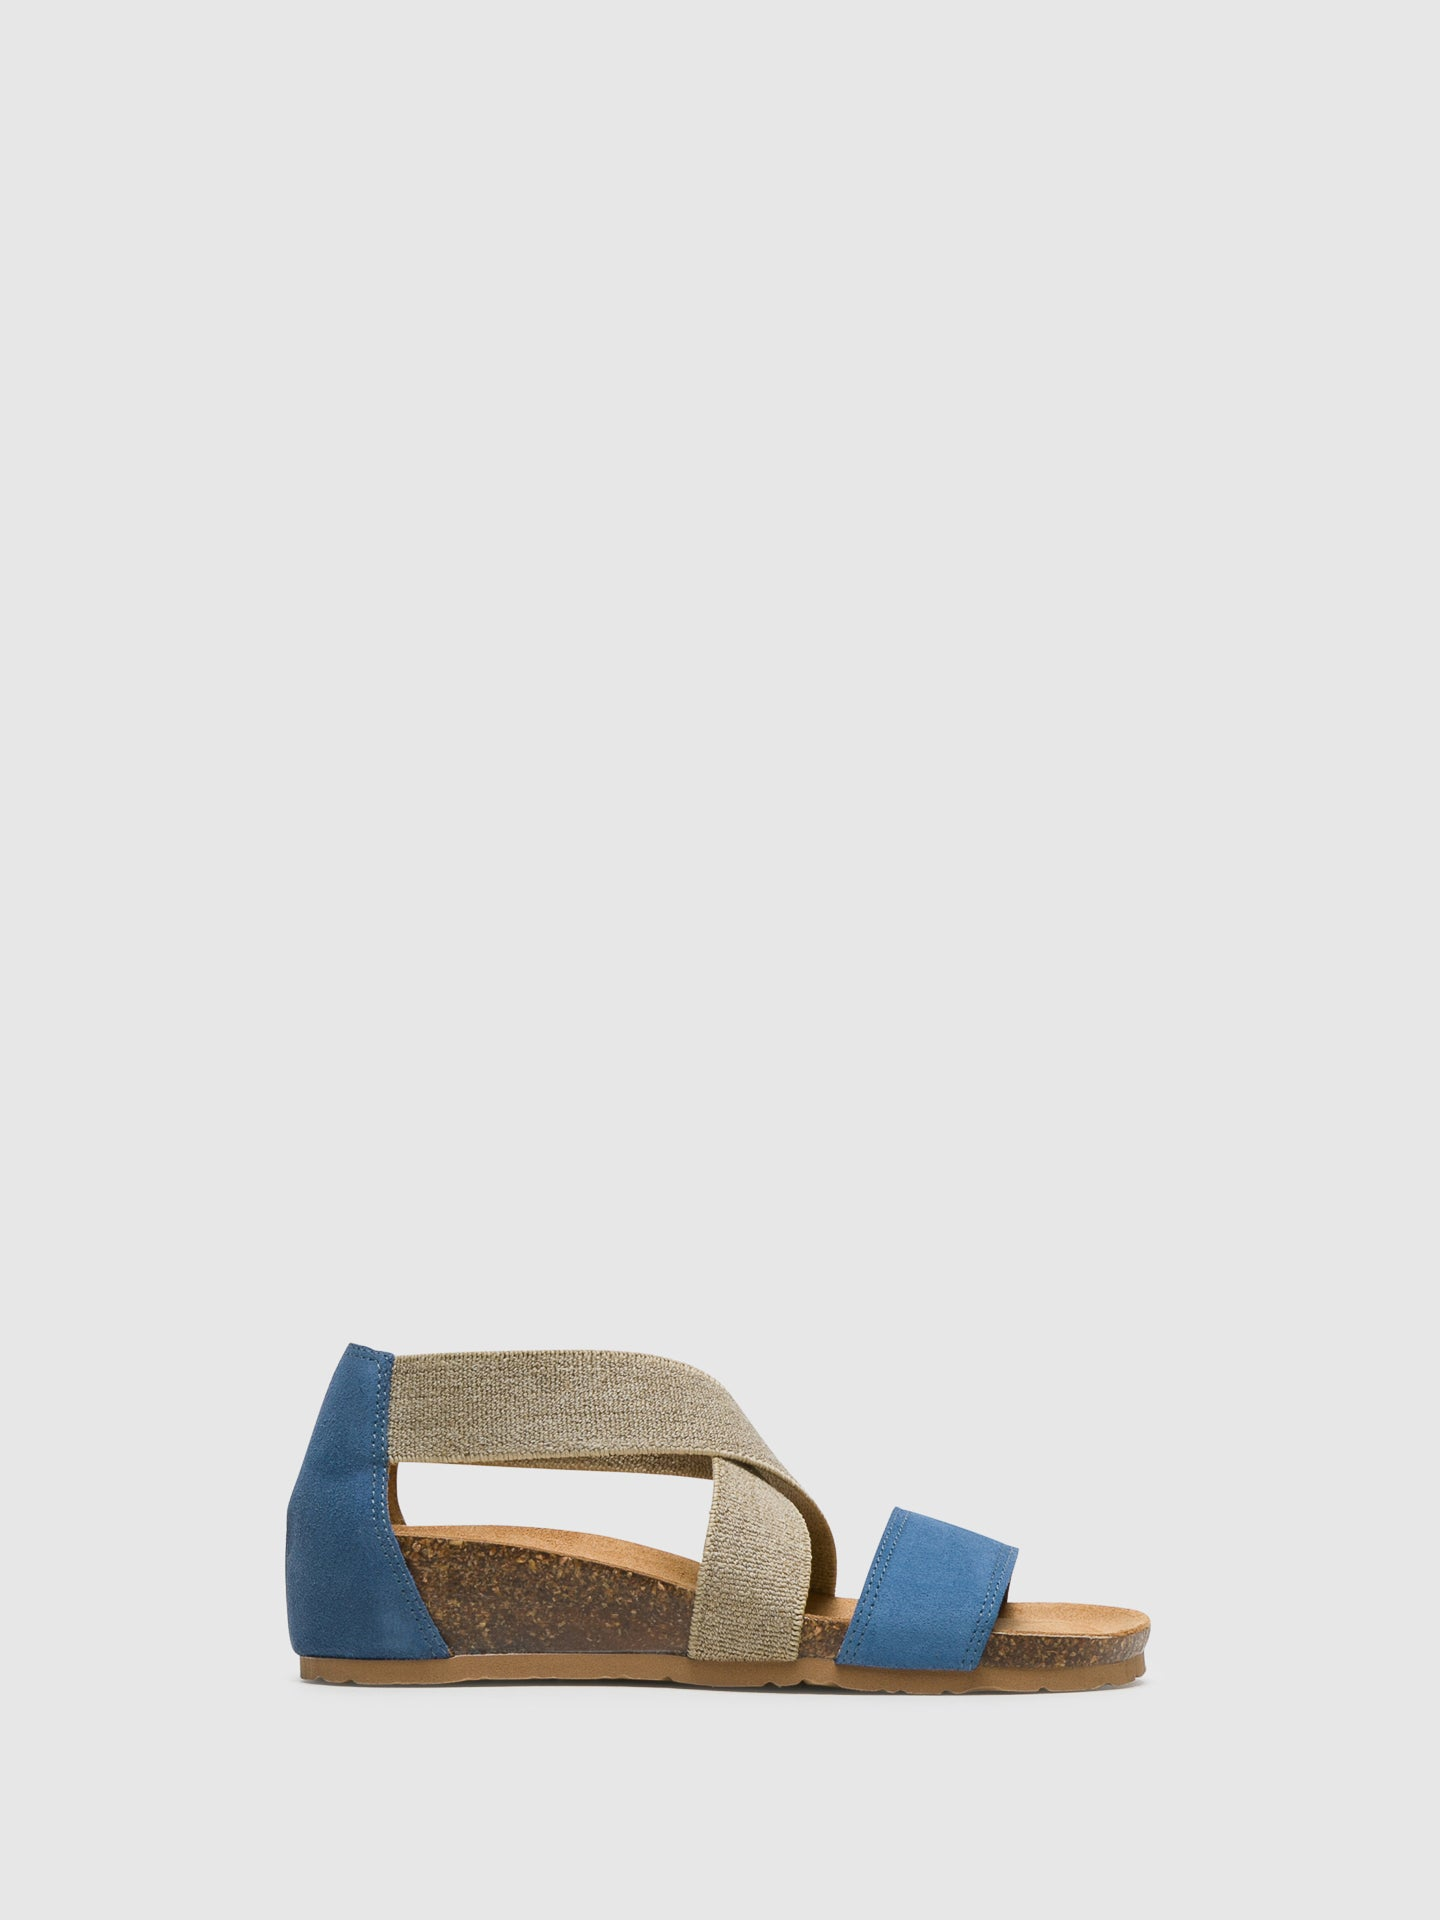 Bos&Co Blue Ankle Strap Sandals